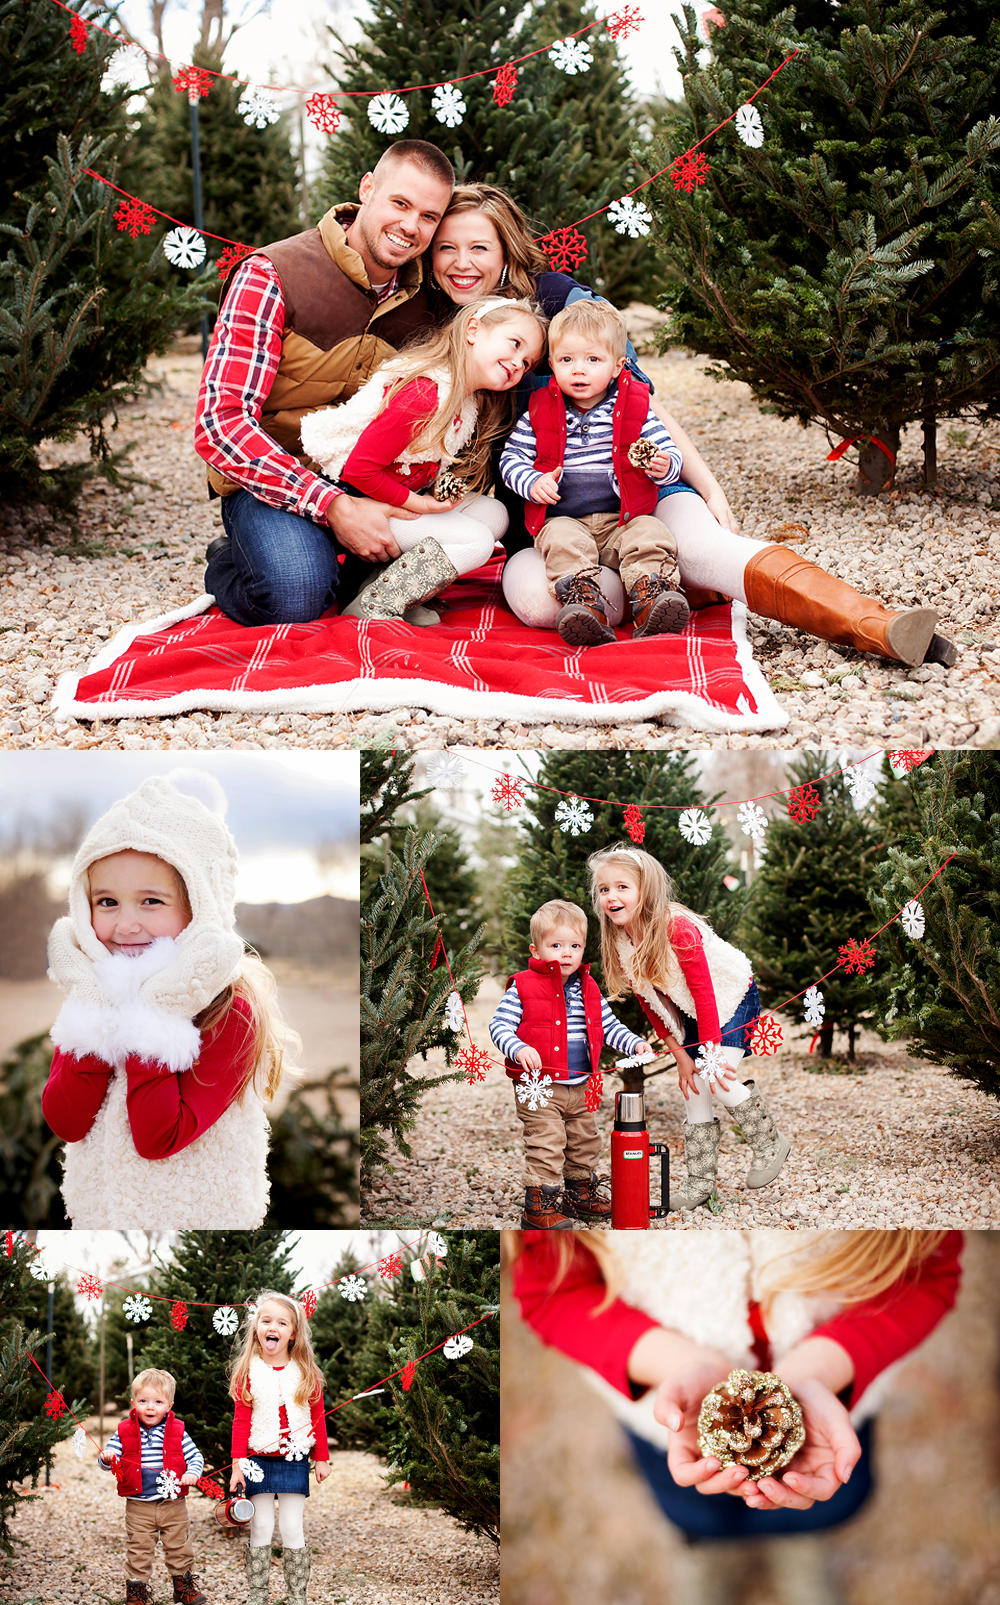 Family Christmas.A Very Merry Session Mini Session Ideas Family